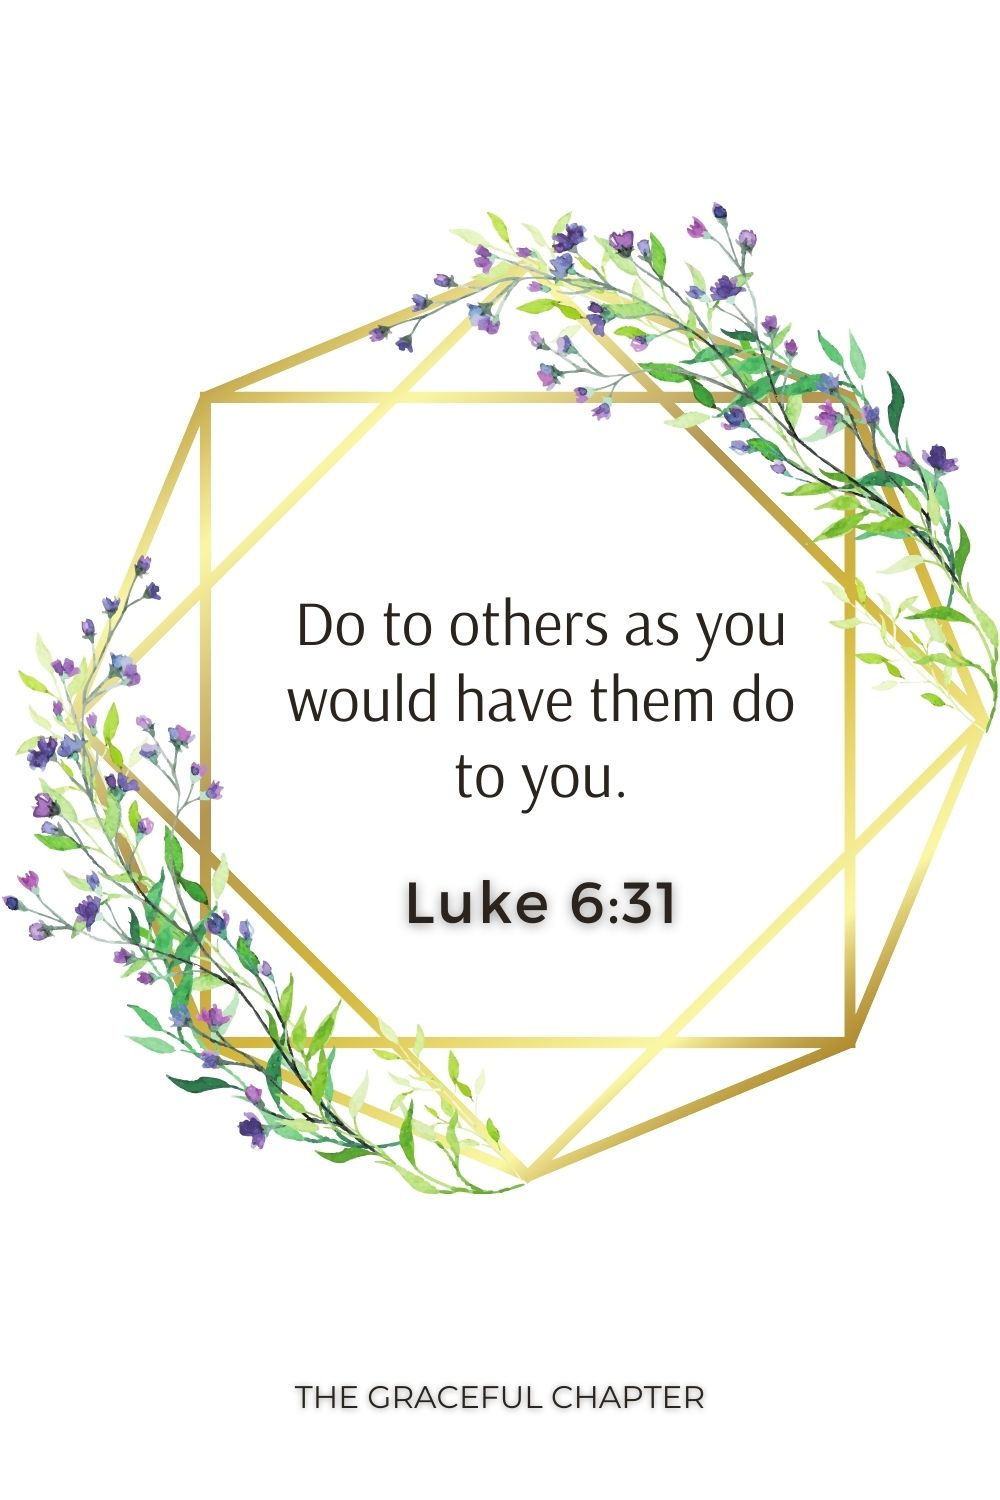 Do to others as you would have them do to you. Luke 6:31